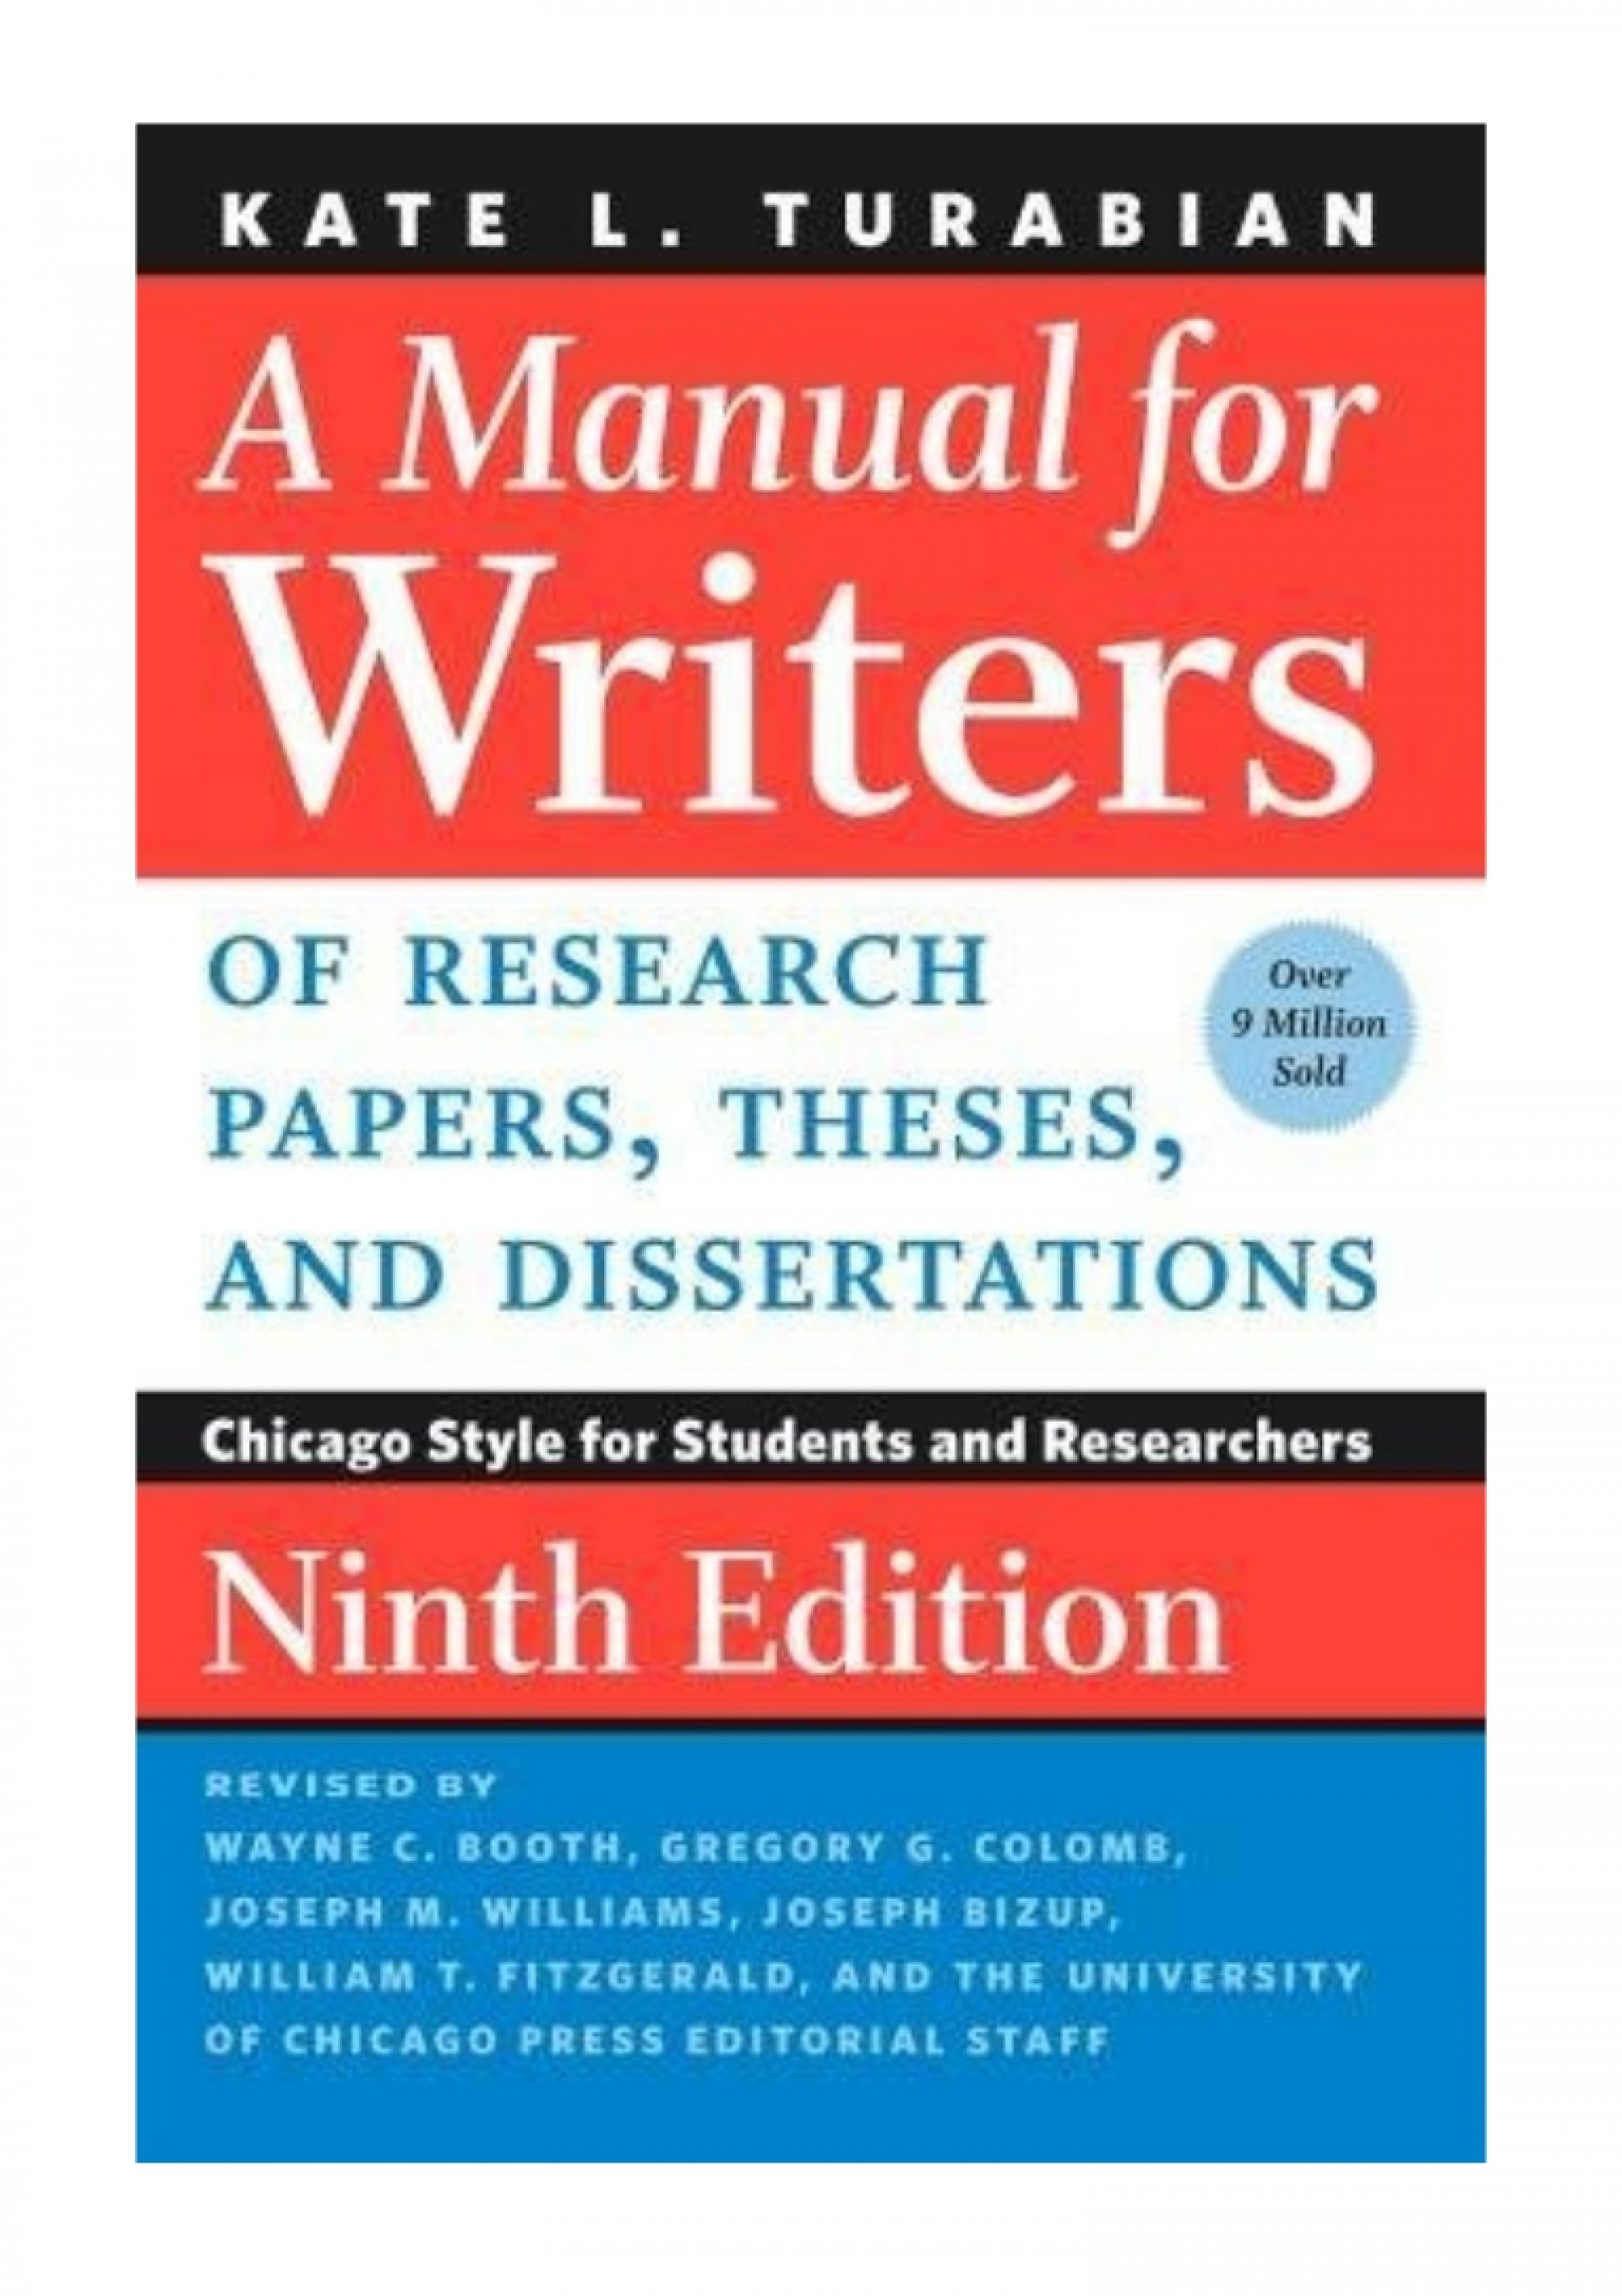 007 022643057x Amanualforwritersofresearchpapersthesesanddissertationsnintheditionbykatel Thumbnail Research Paper Manual For Writers Of Papers Theses And Sensational A Dissertations 8th Edition Pdf Eighth 1920